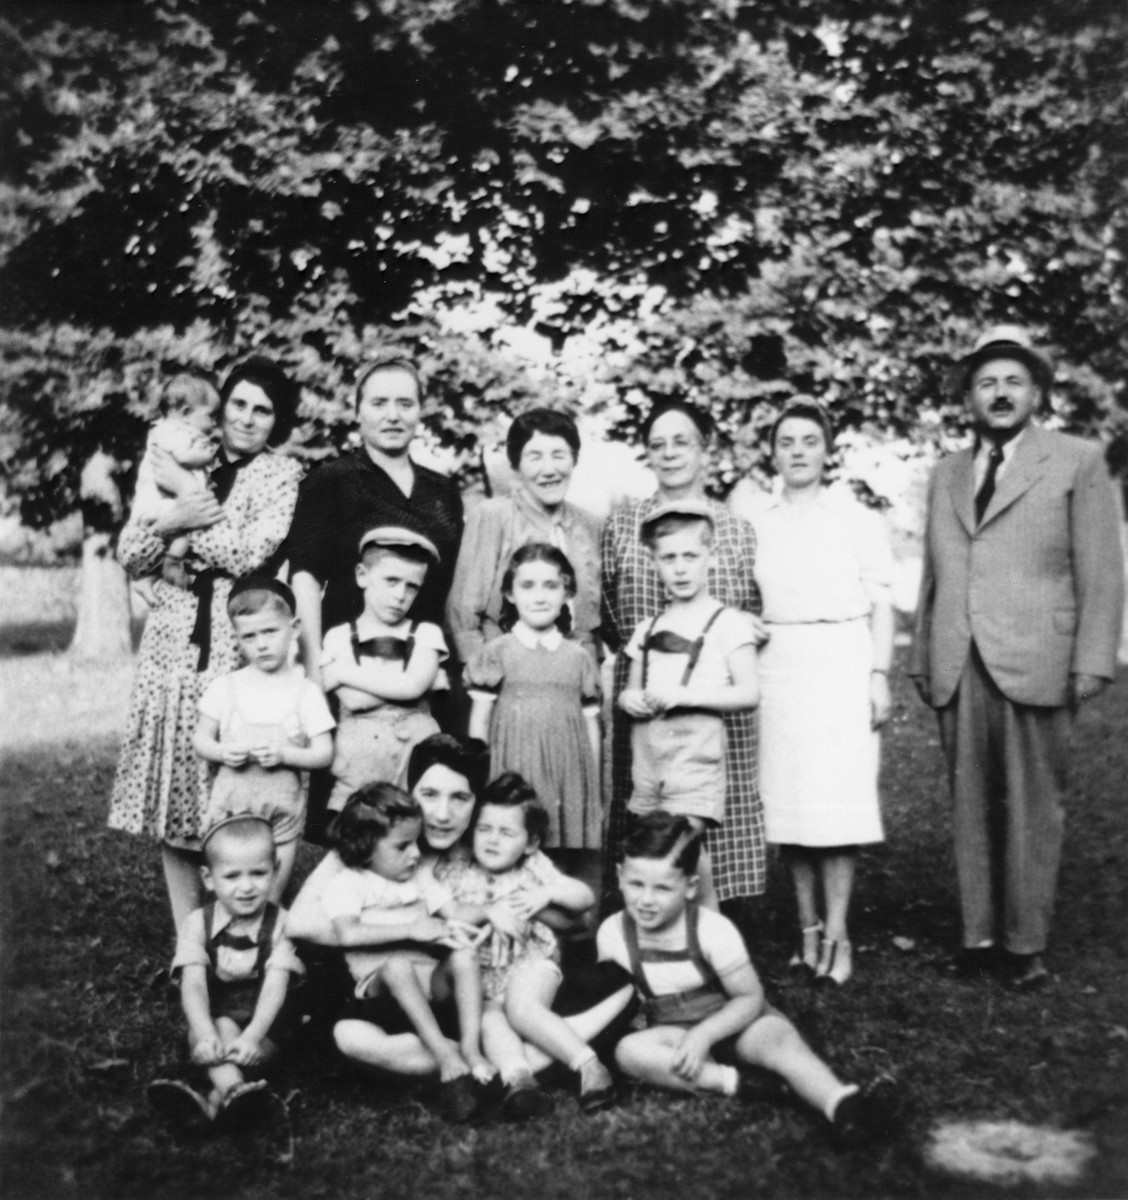 Group portrait of members of three Jewish refugee families in Malo, Italy, where they have been confined by the Italian authorities.  Pictured in the front row (left to right) are: Danko Buchler, an unidentified woman holding Miriam Rothhstein and an unidentified child, and Ari Rothstein. In the middle row from left to right are: Djordje Deutsch, Branko Deutsch, the Buchler daughter, and Pavel Deutsch.  In the back row from left to right are: Renee Buchler holding her baby daughter, Gabriela Deutsch, unknown, Mrs.  Milica Buchler, Mrs. and Mr. Rothstein.